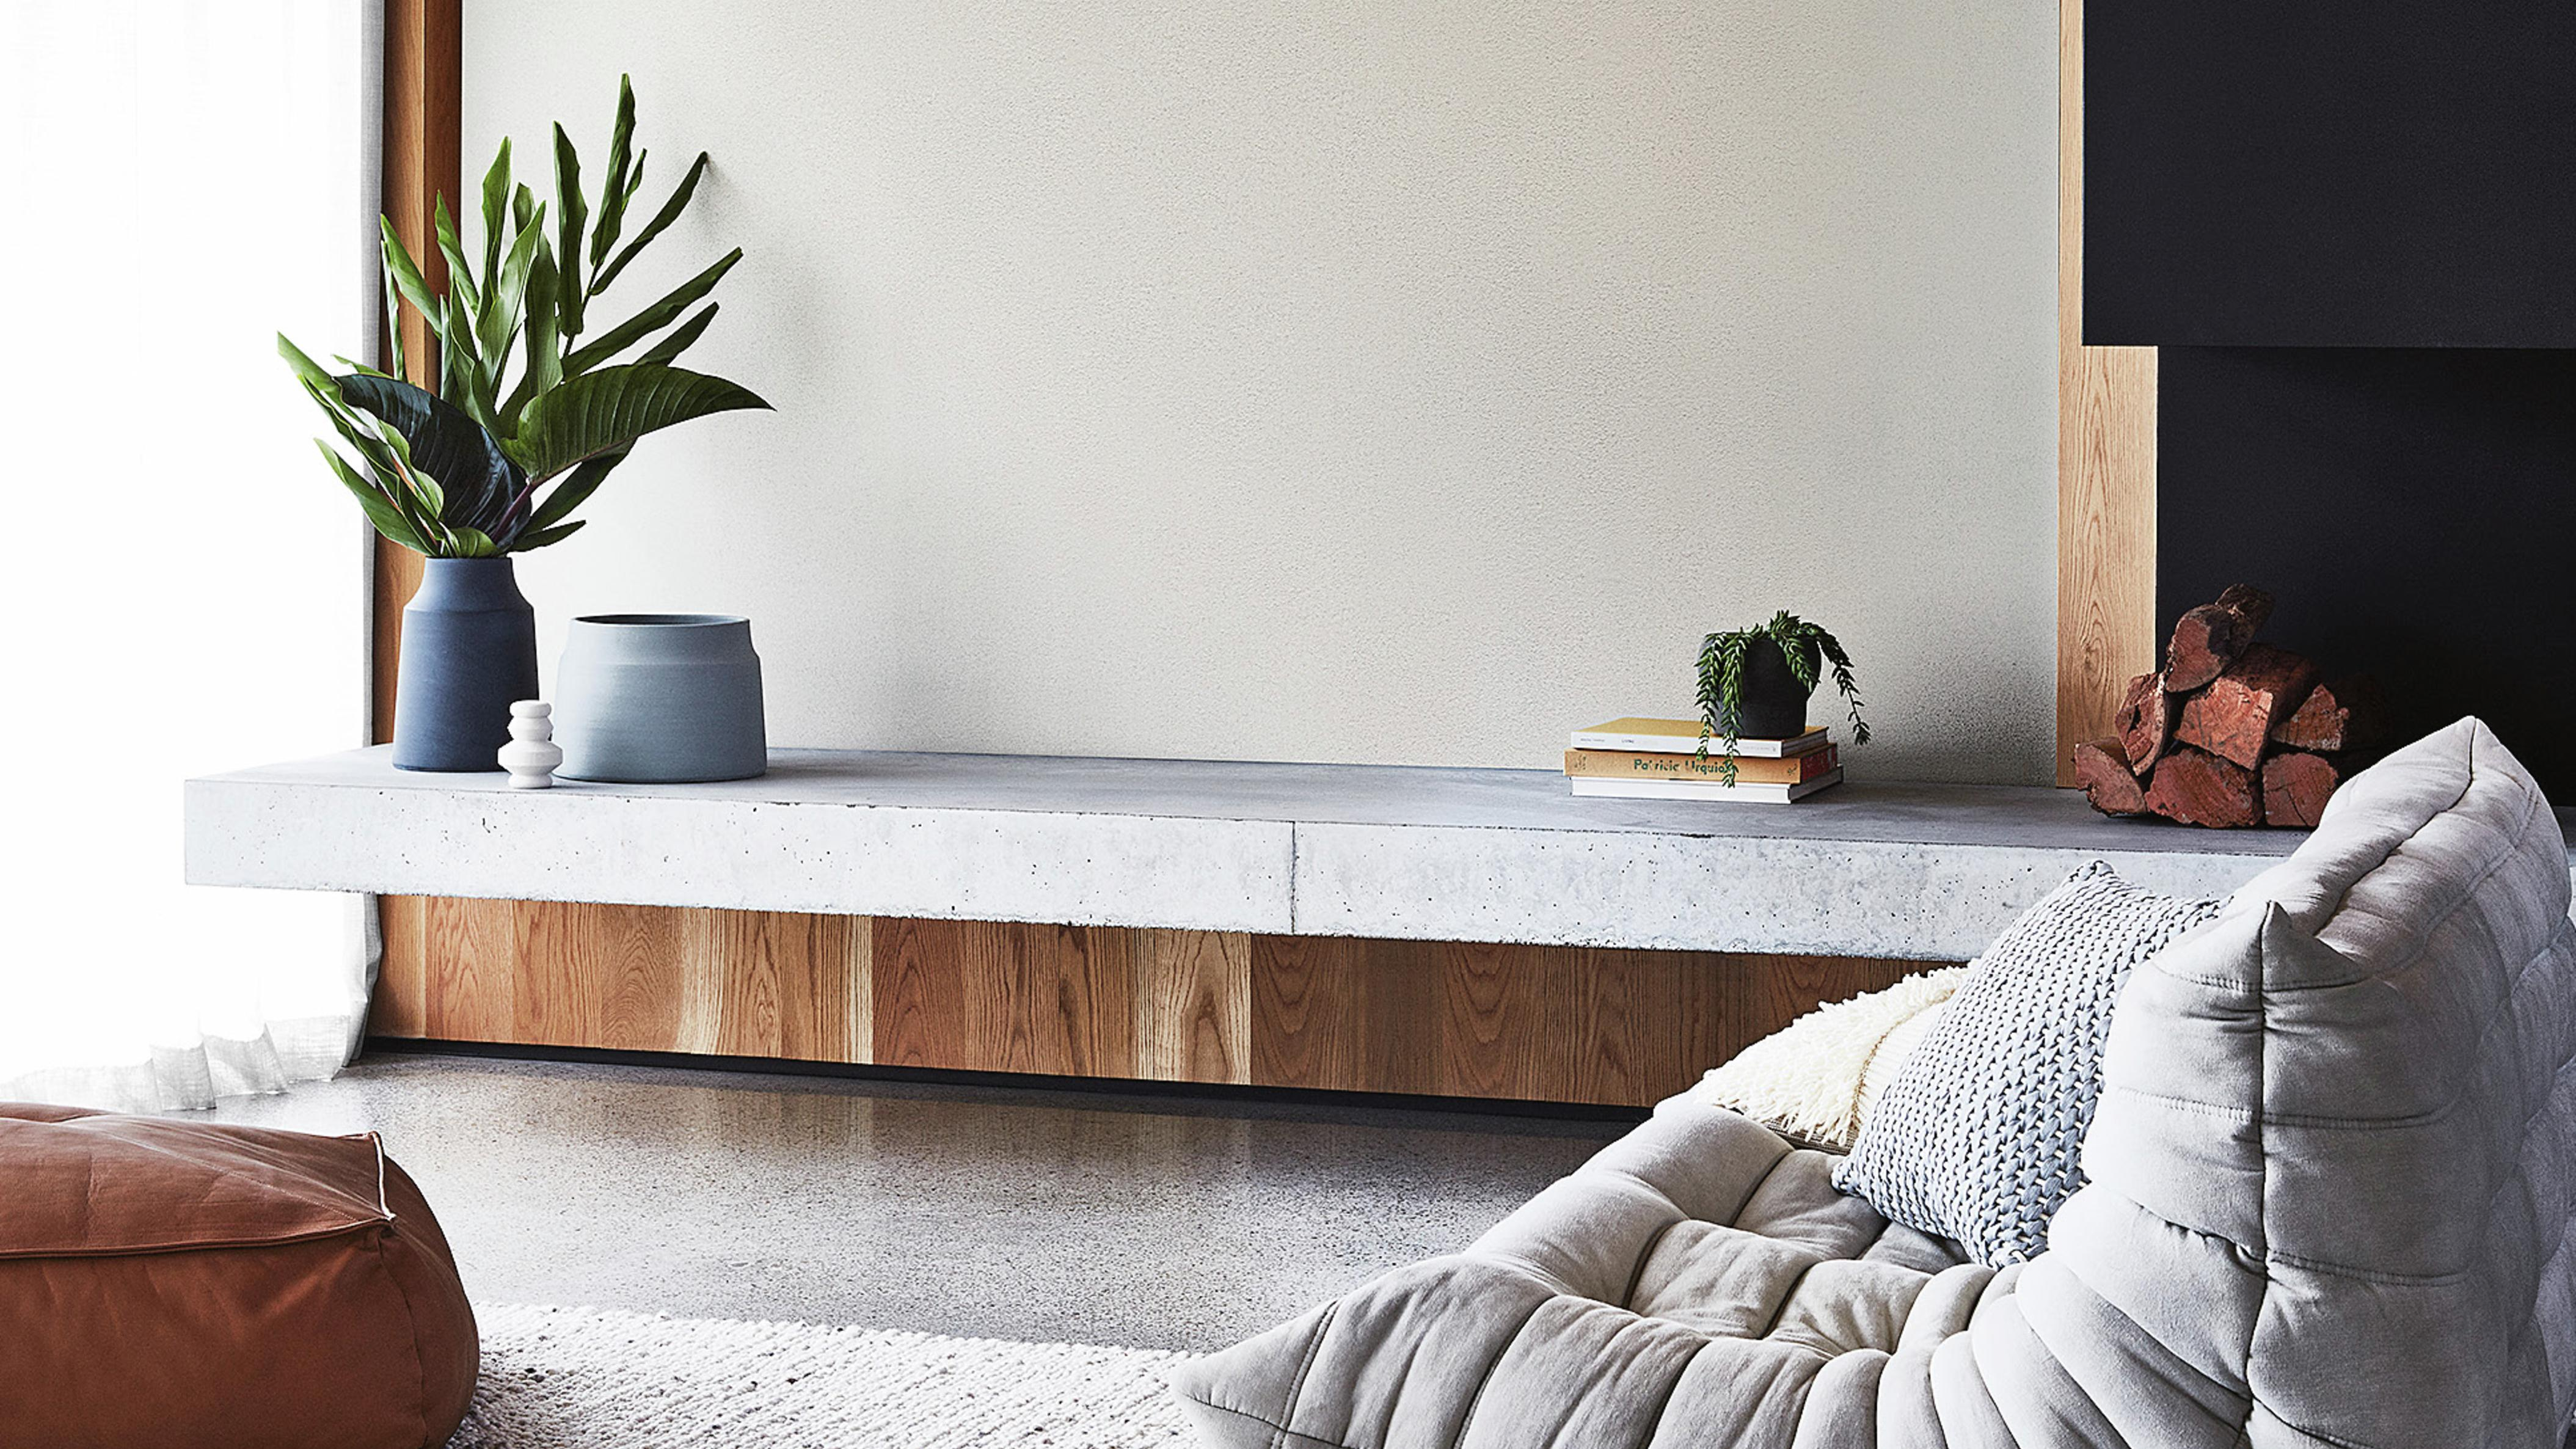 Modern living room area with stone entertainment unit with plants and other decor on top.